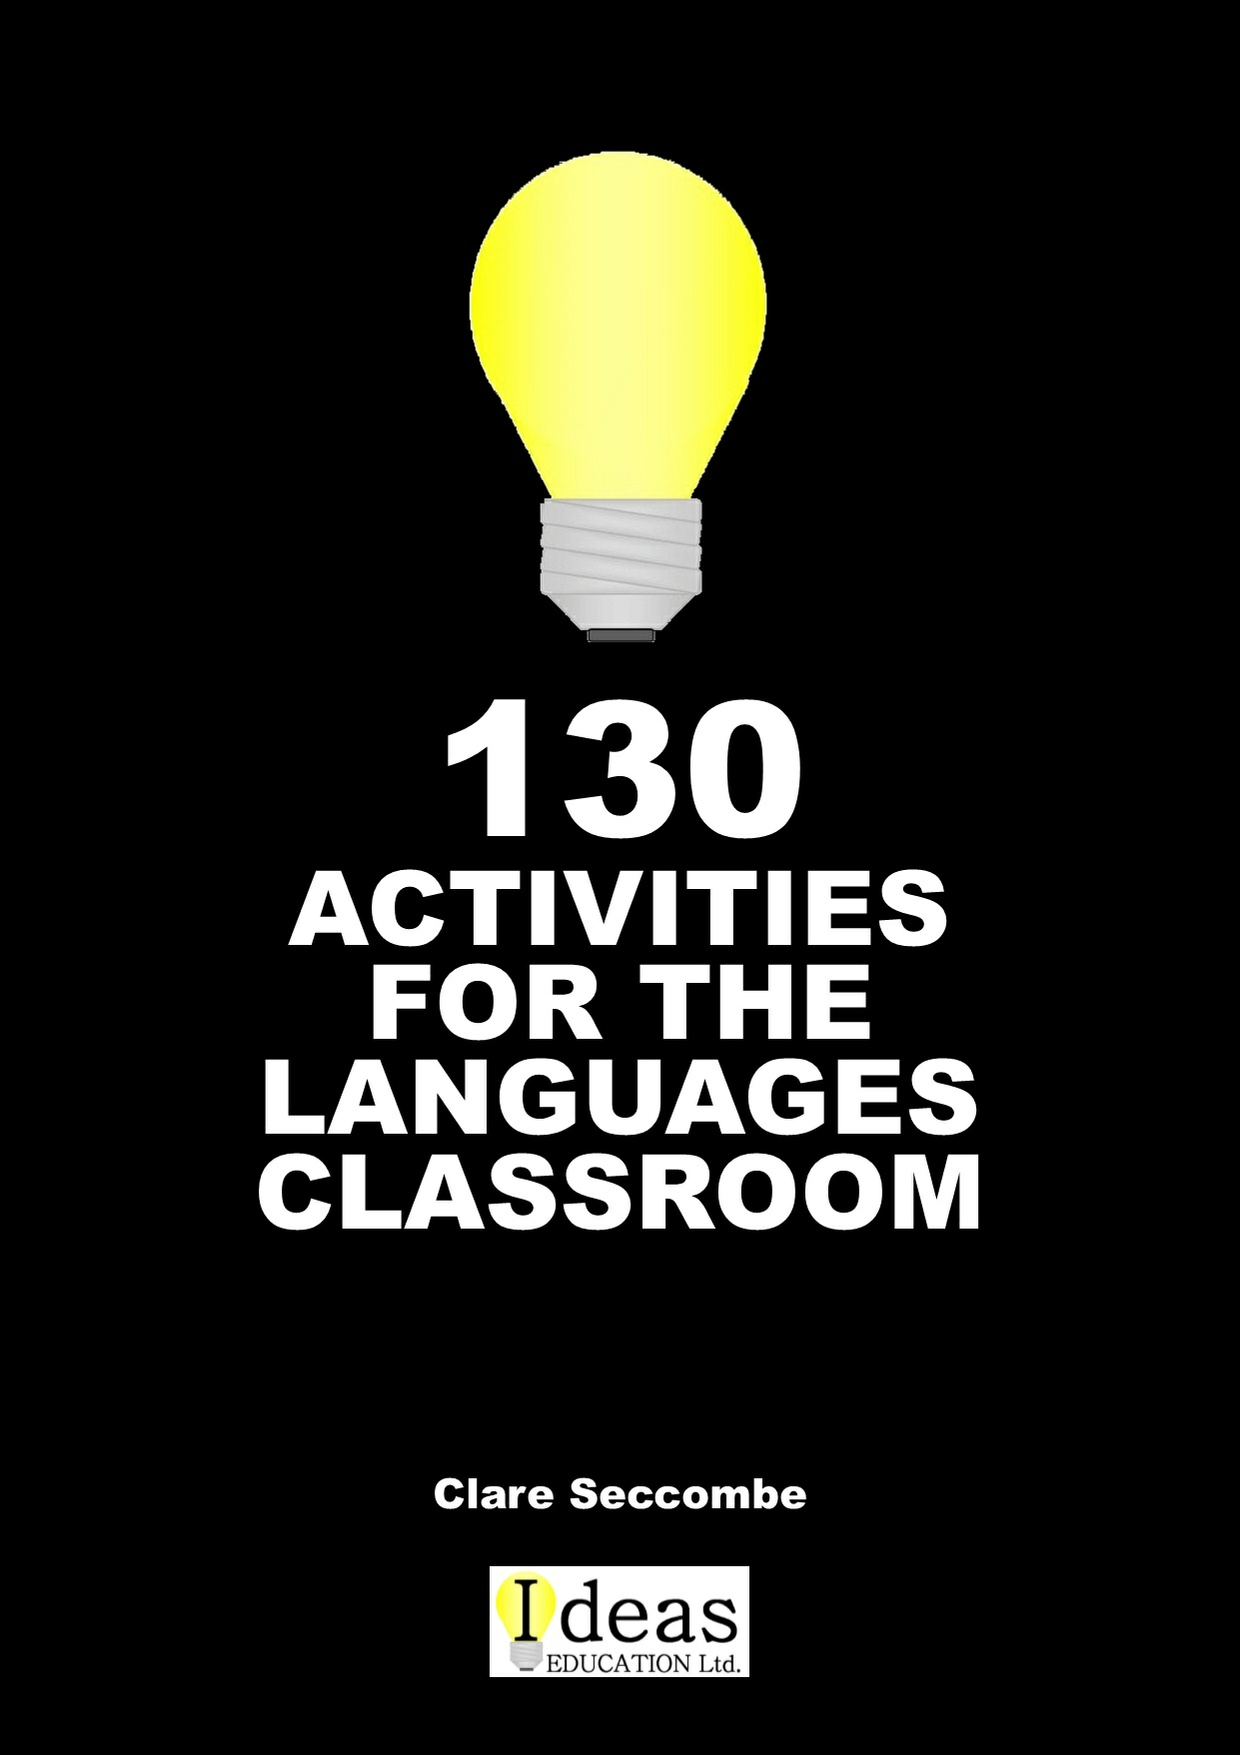 130 Activities for the Languages Classroom